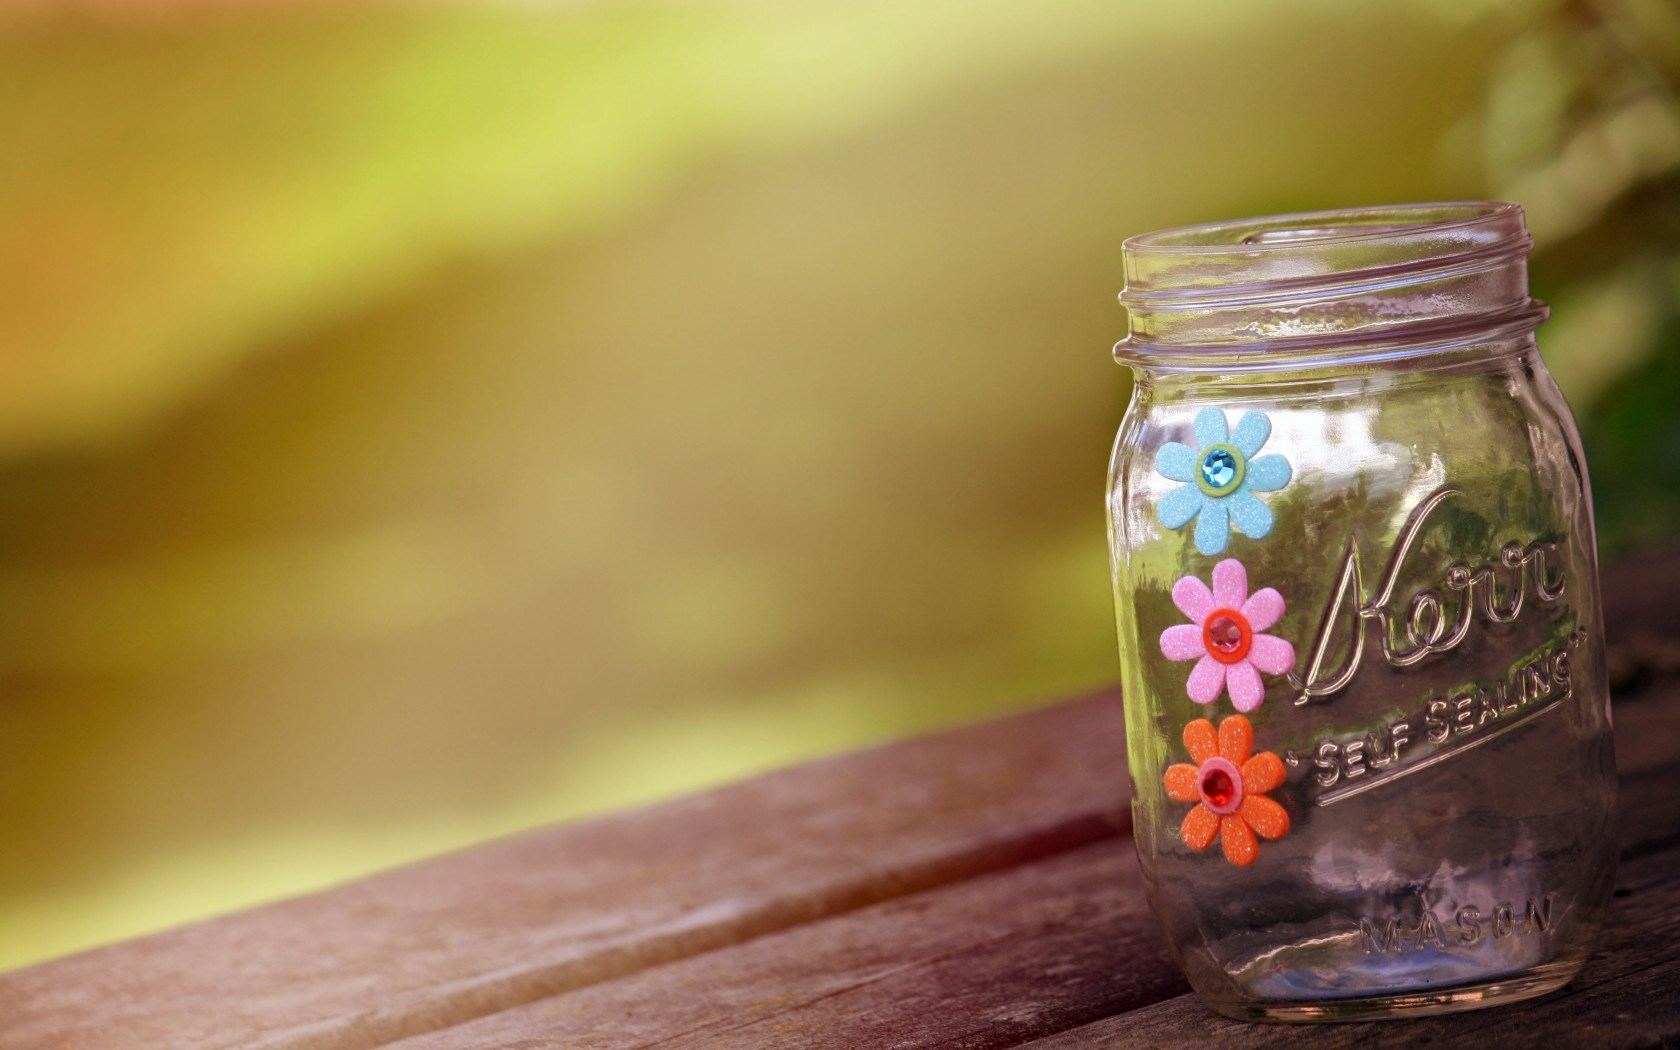 Jar 39470 1680x1050 px ~ HDWallSource.com